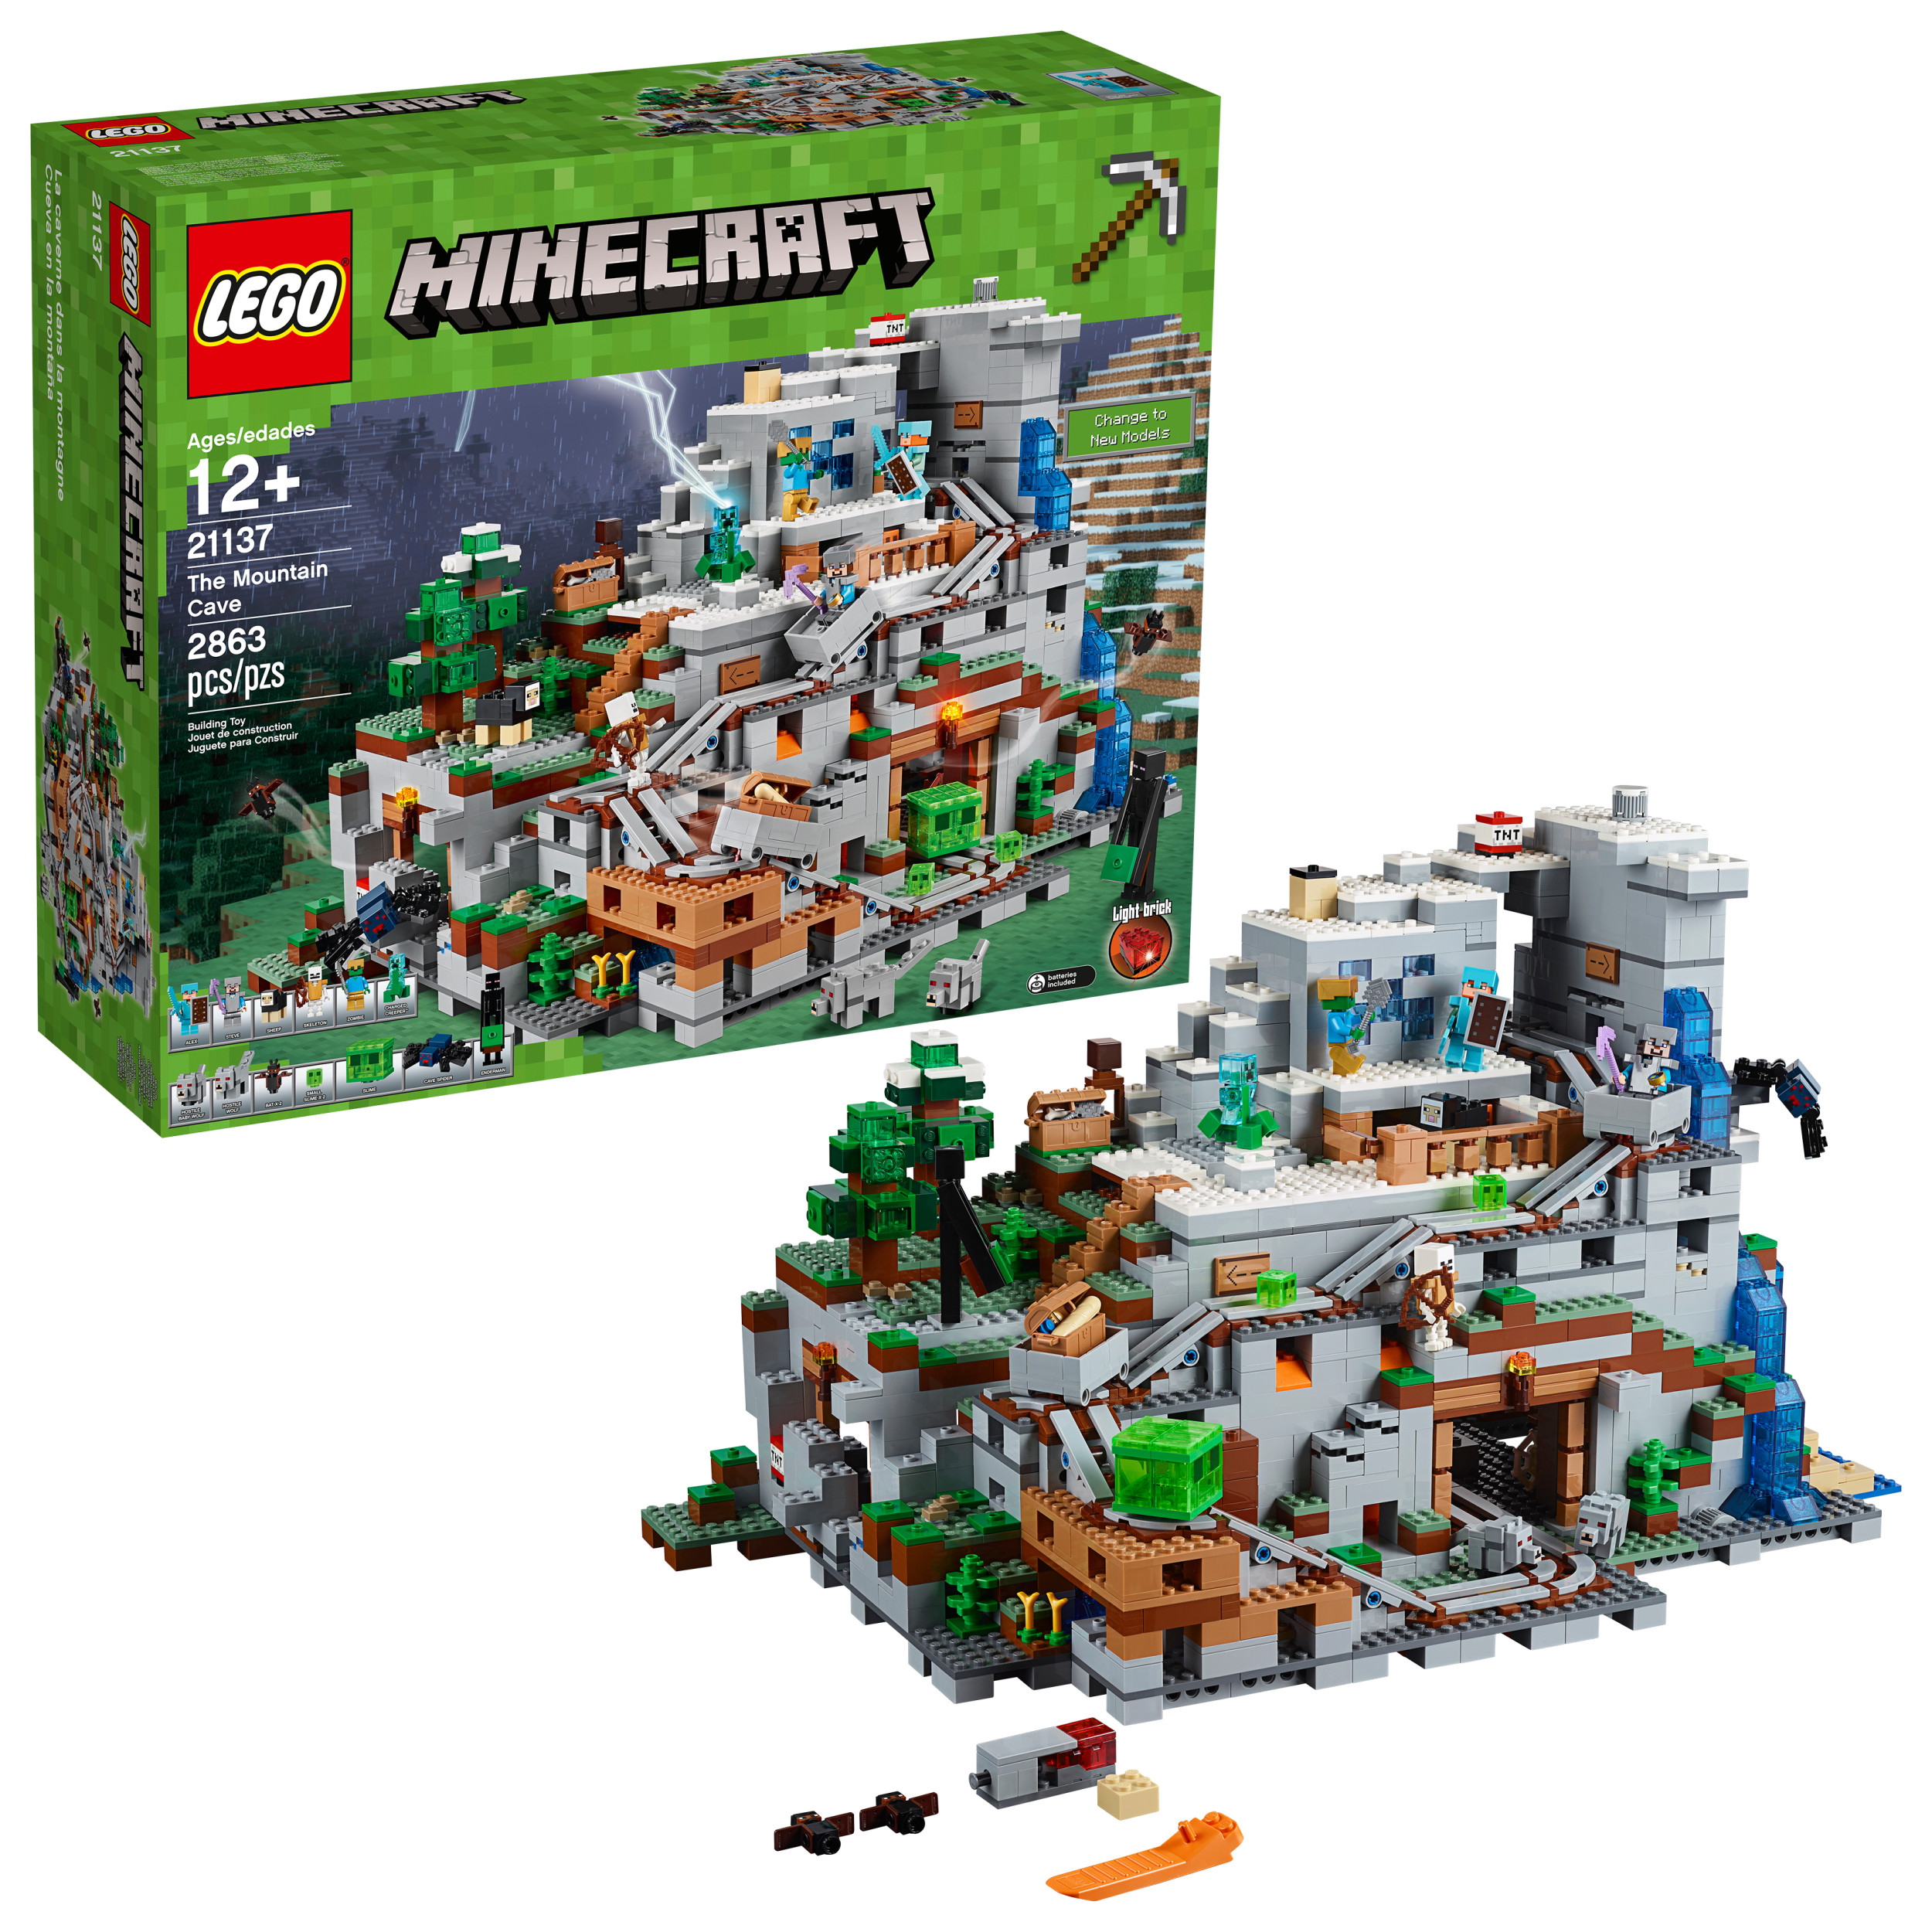 Lego Minecraft The Mountain Cave 21137 by LEGO System Inc